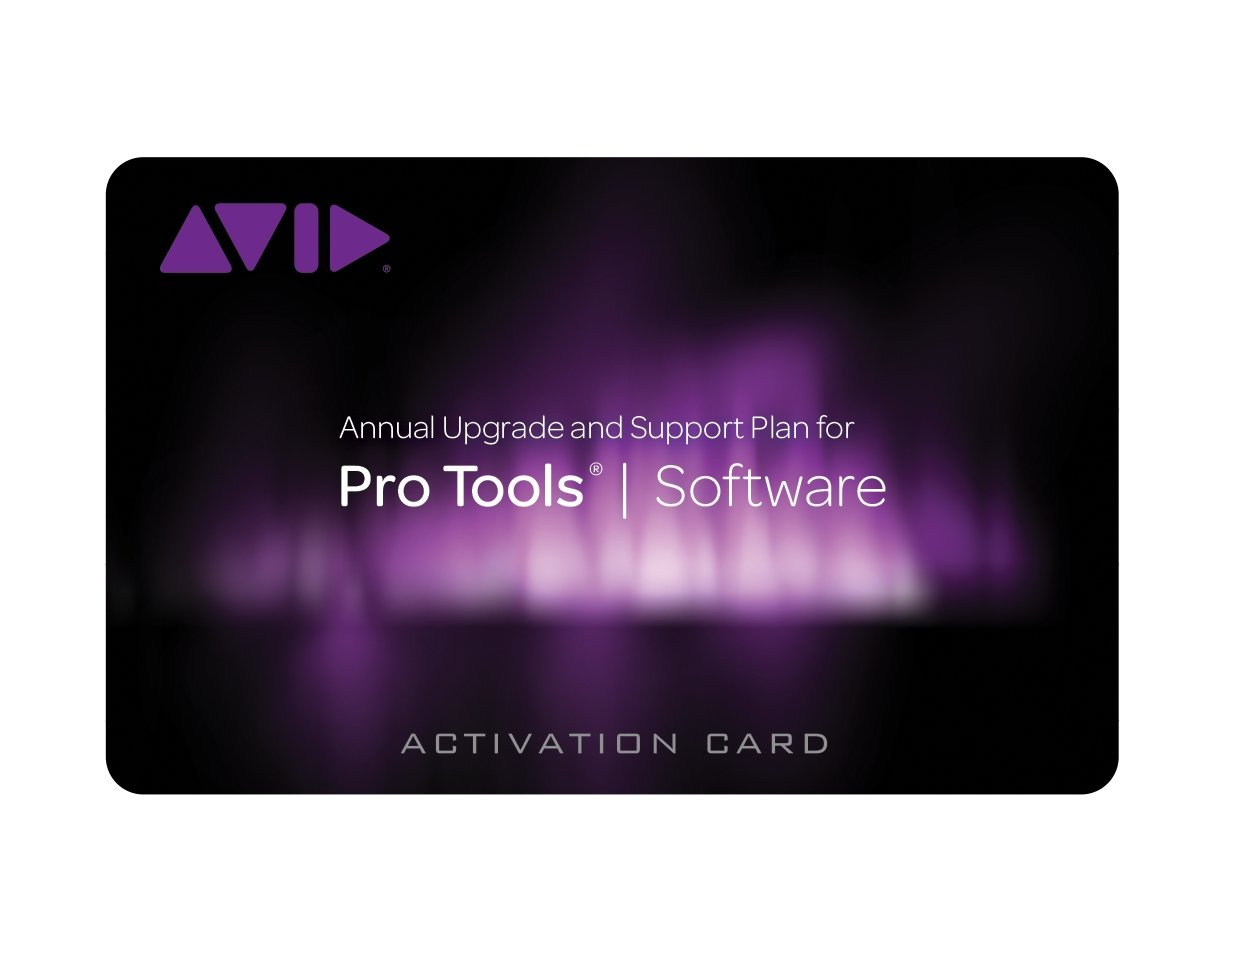 Annual Upgrade and Support Plan